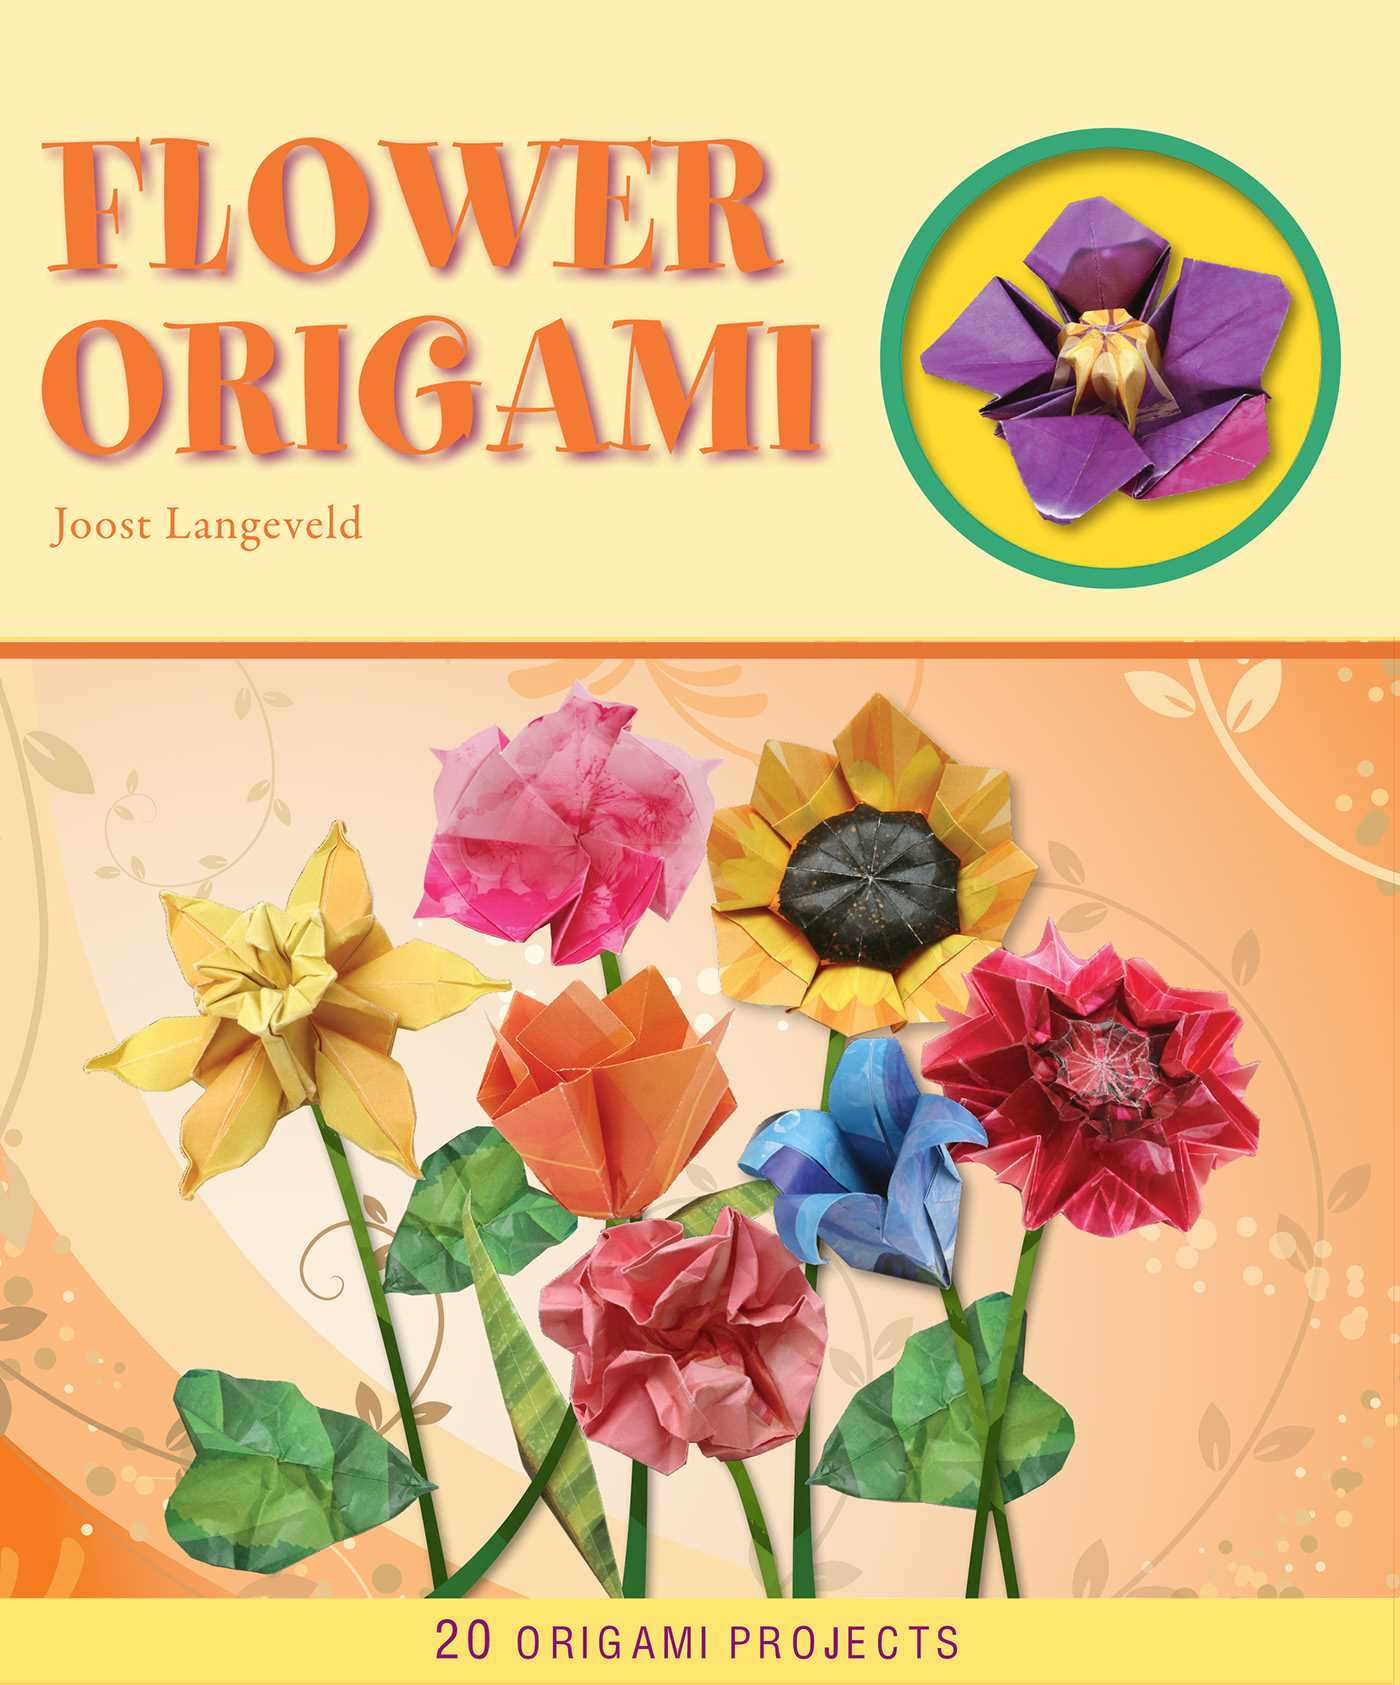 Flower Origami Ebook By Joost Langeveld Official Publisher Page